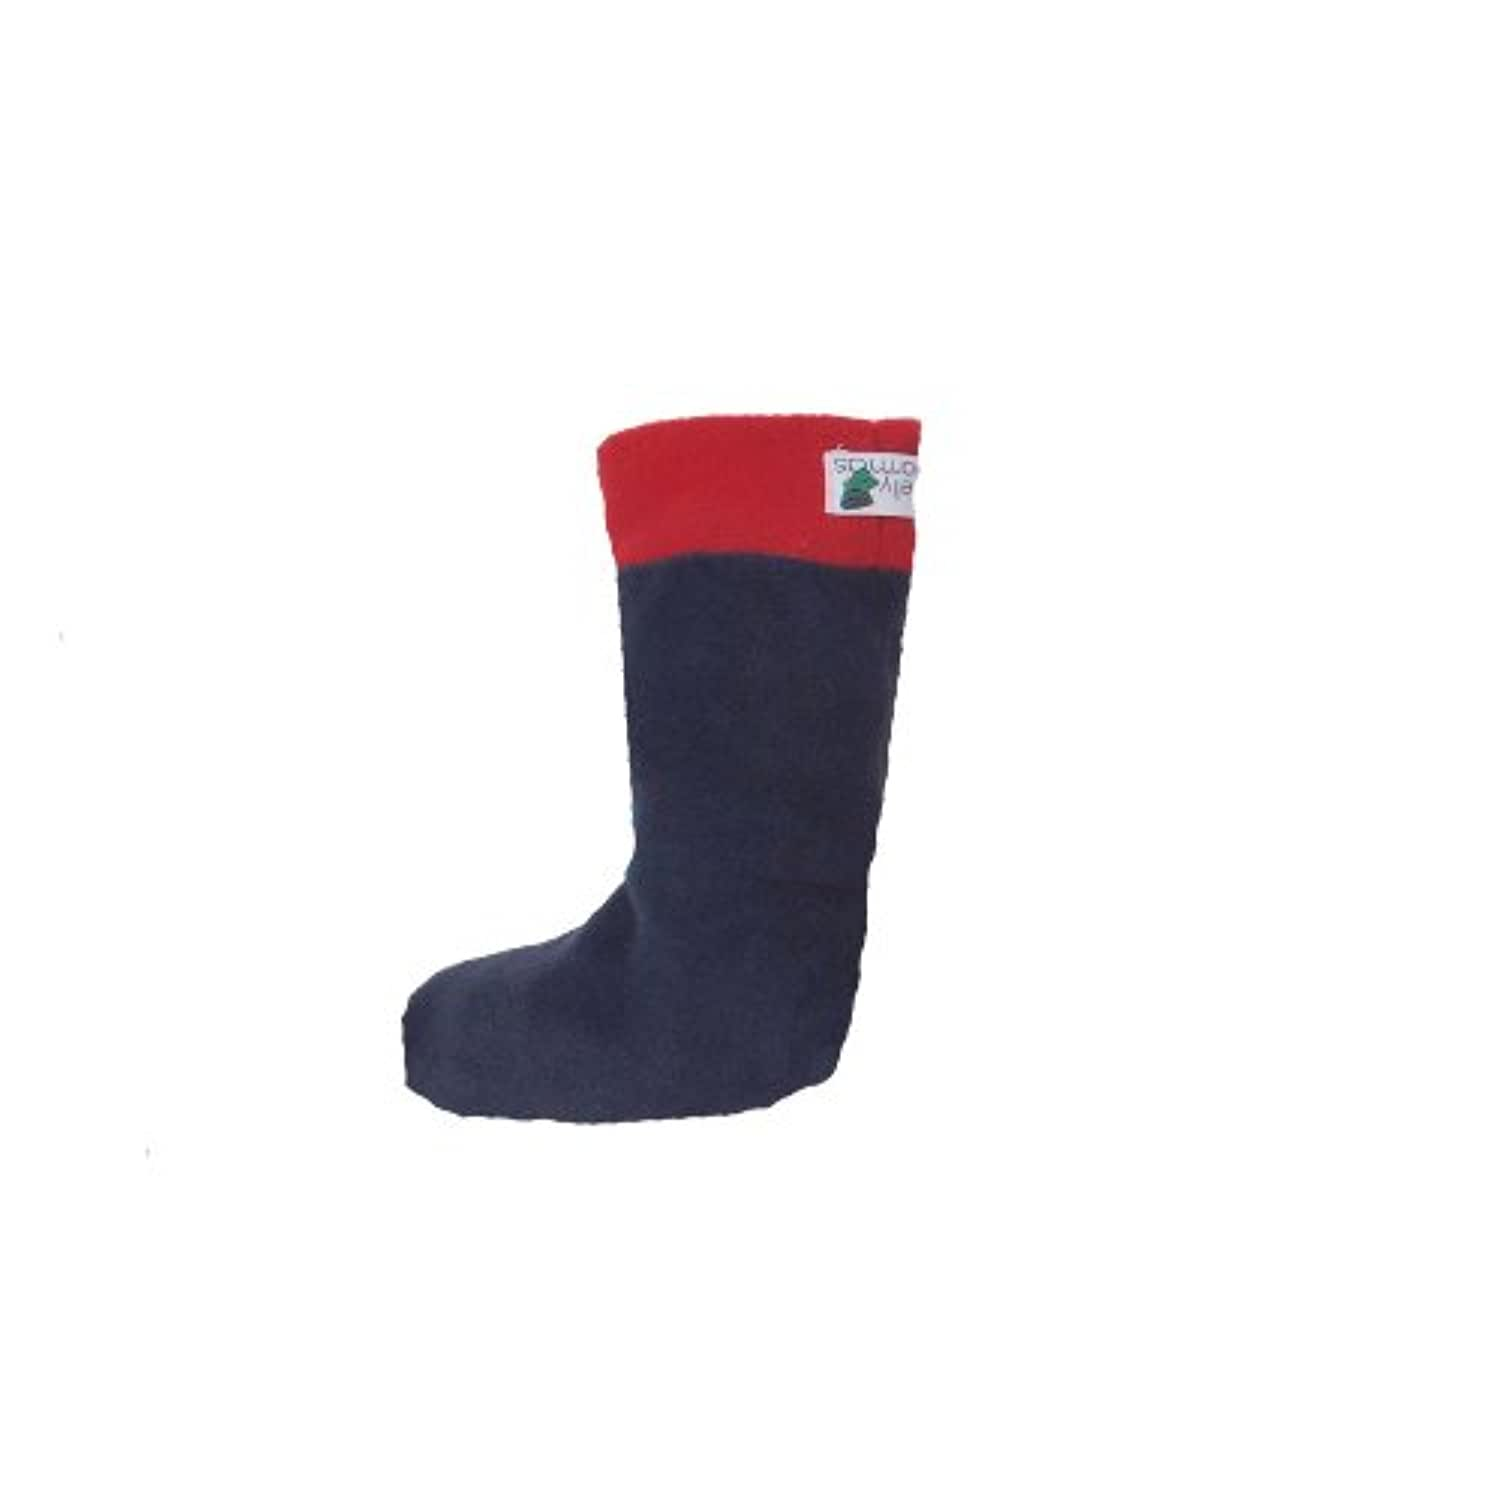 Childs WellyWarmas - Navy/Red - Size 1-3 - Age 7-8